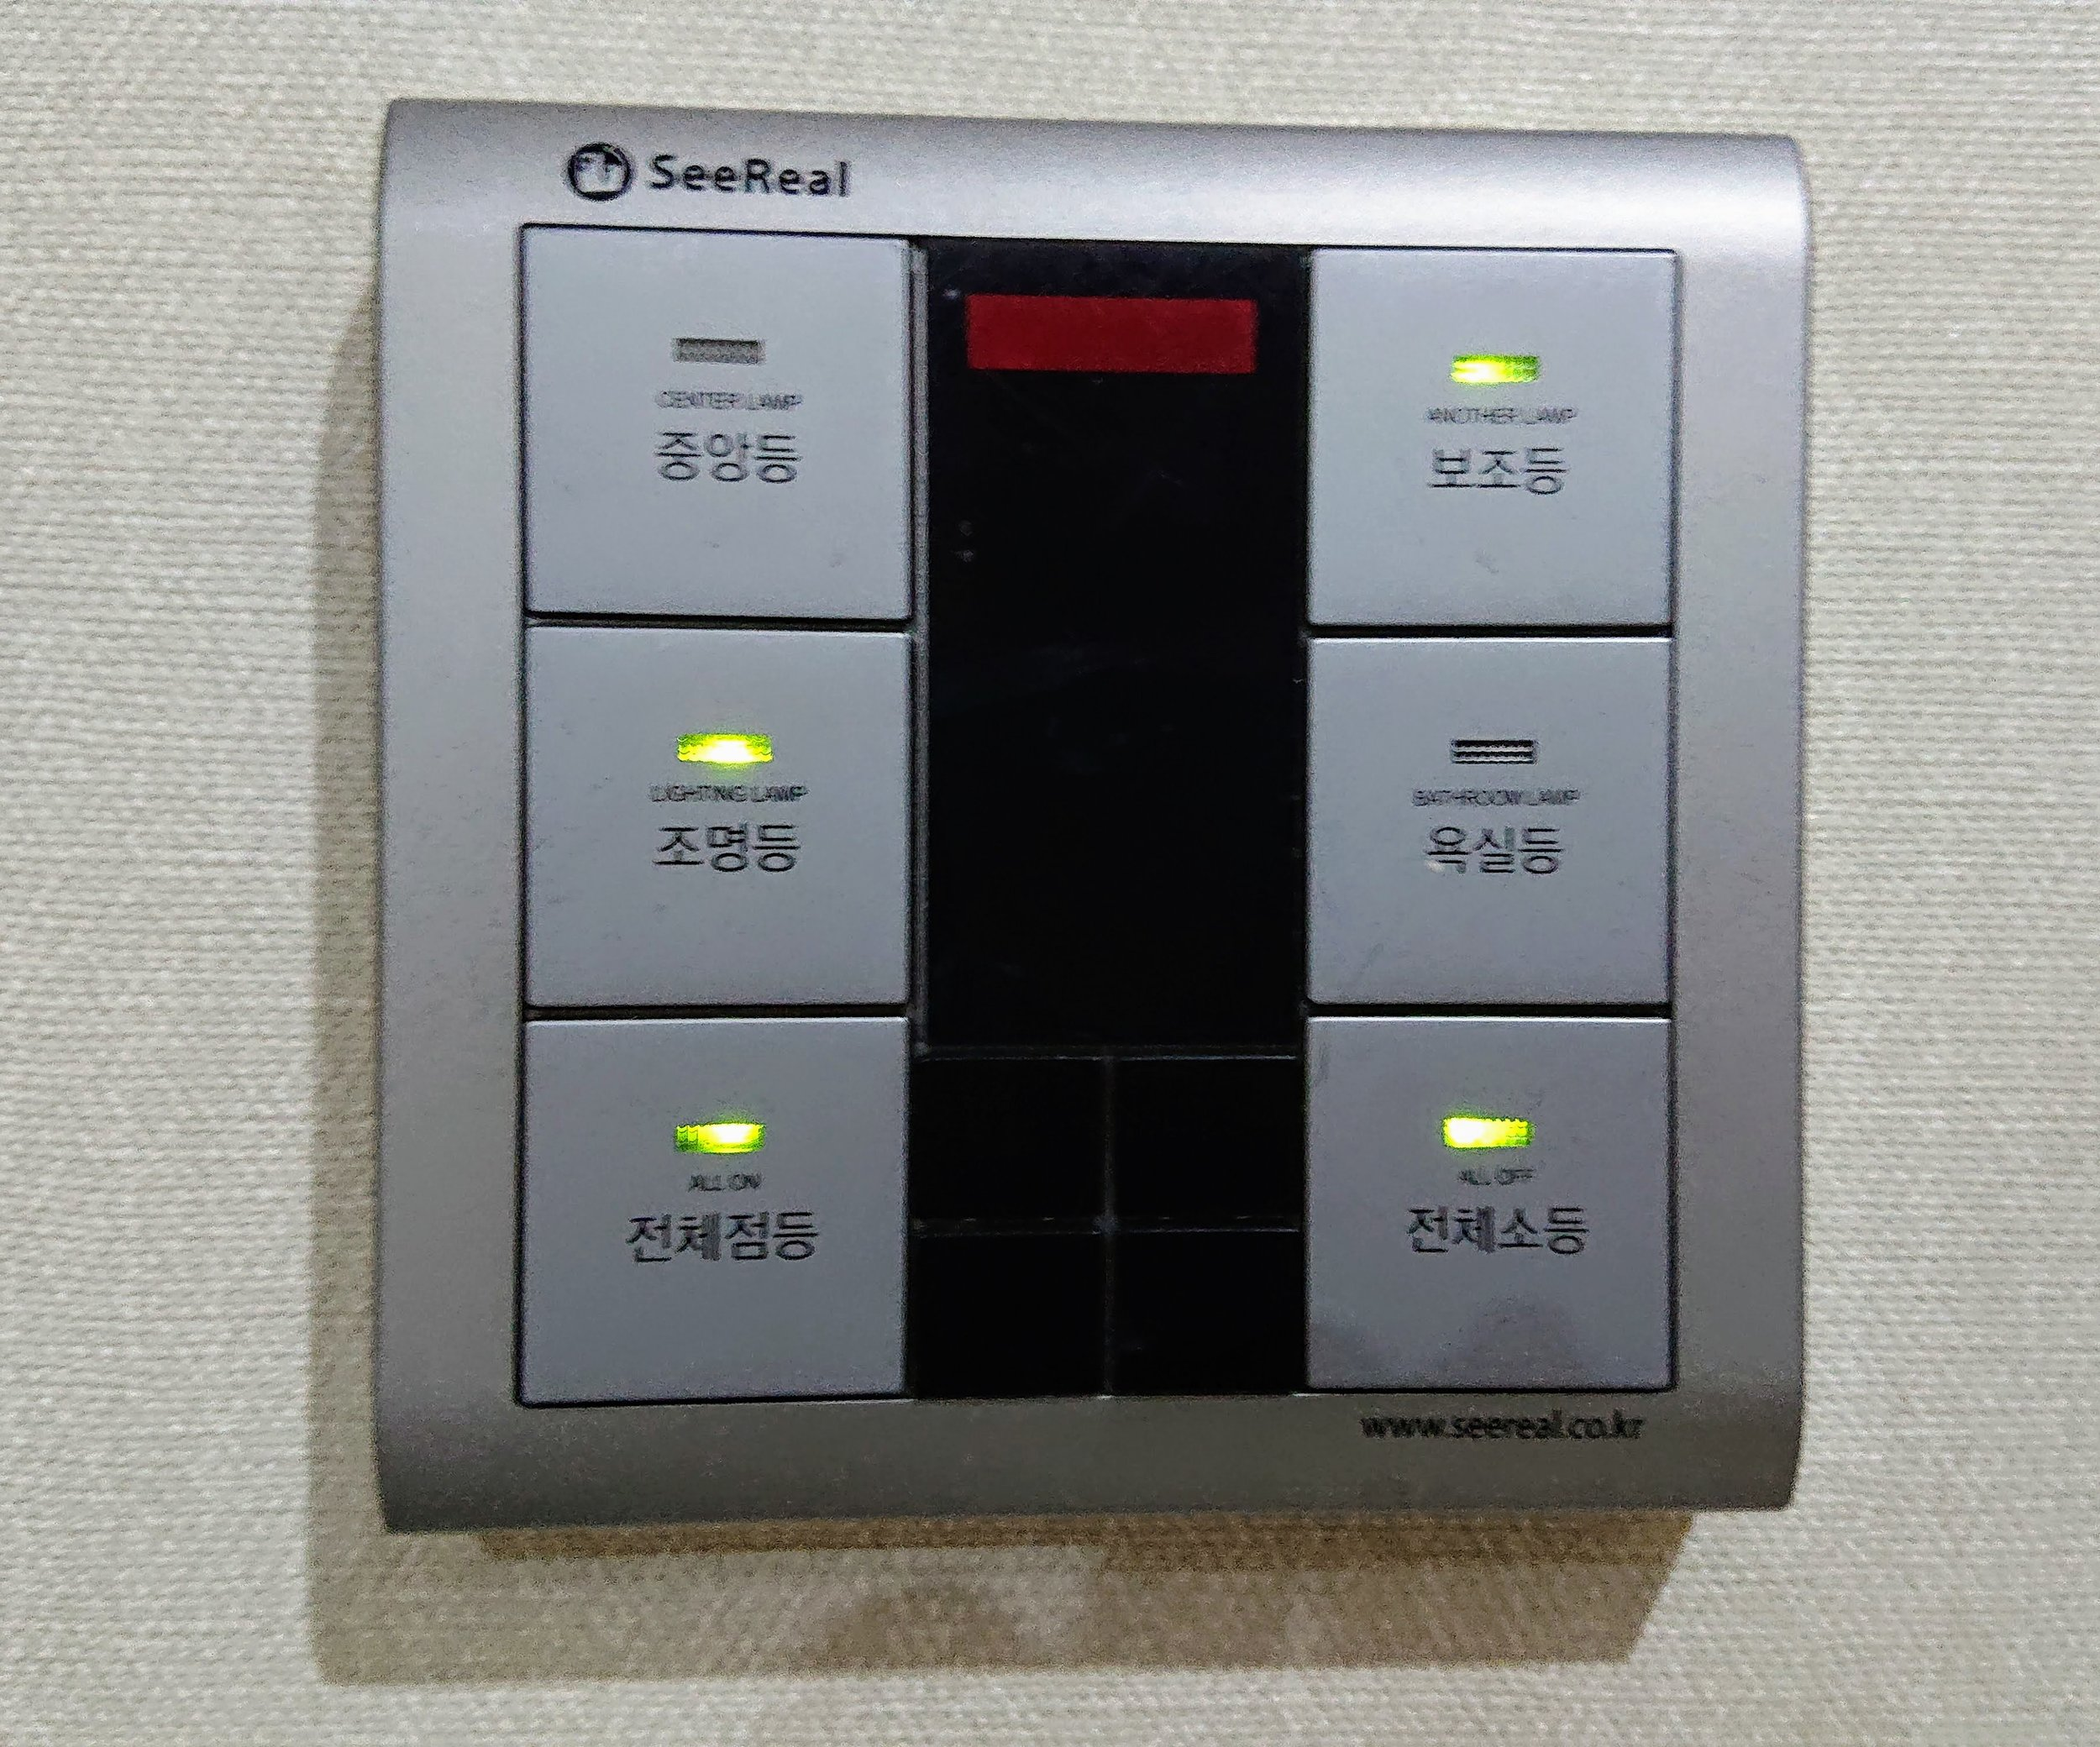 What Korean technological marvel will Jess be impressed by today? The panel that controls the lights and air conditioning, of course!